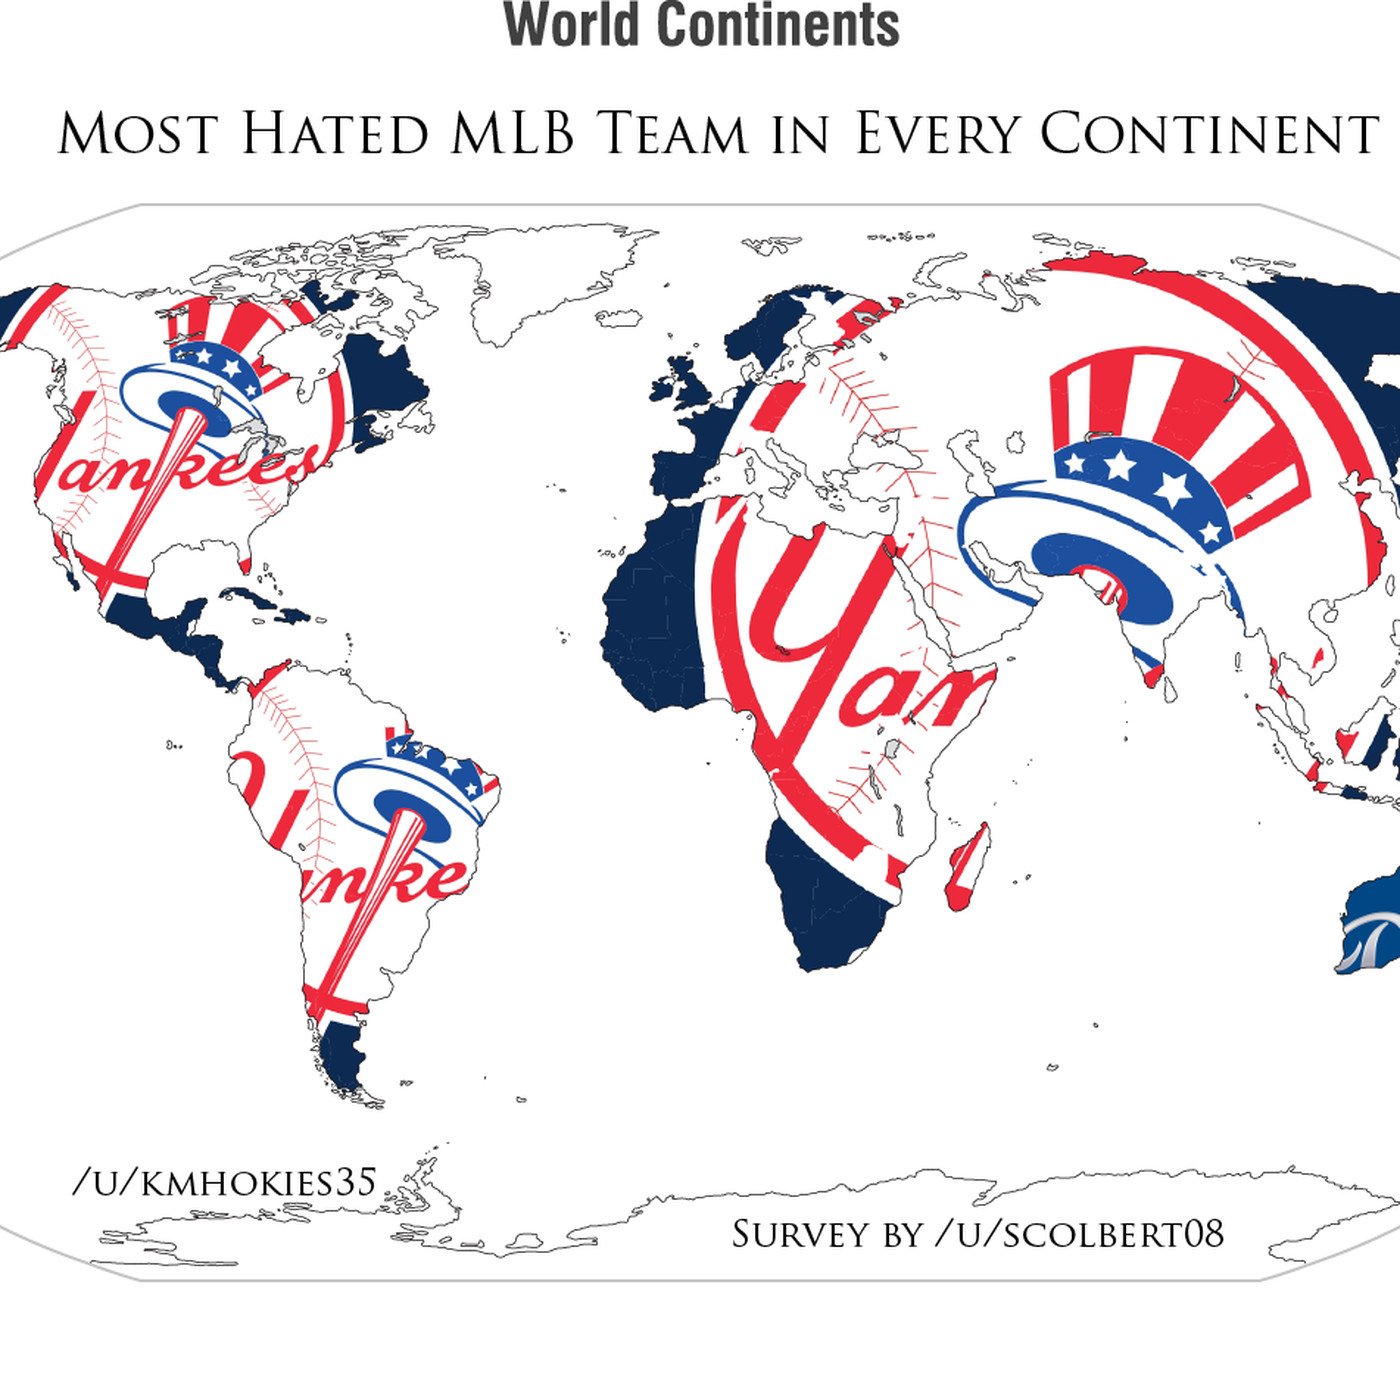 This MLB hate map confirms everyone detests the Yankees ...